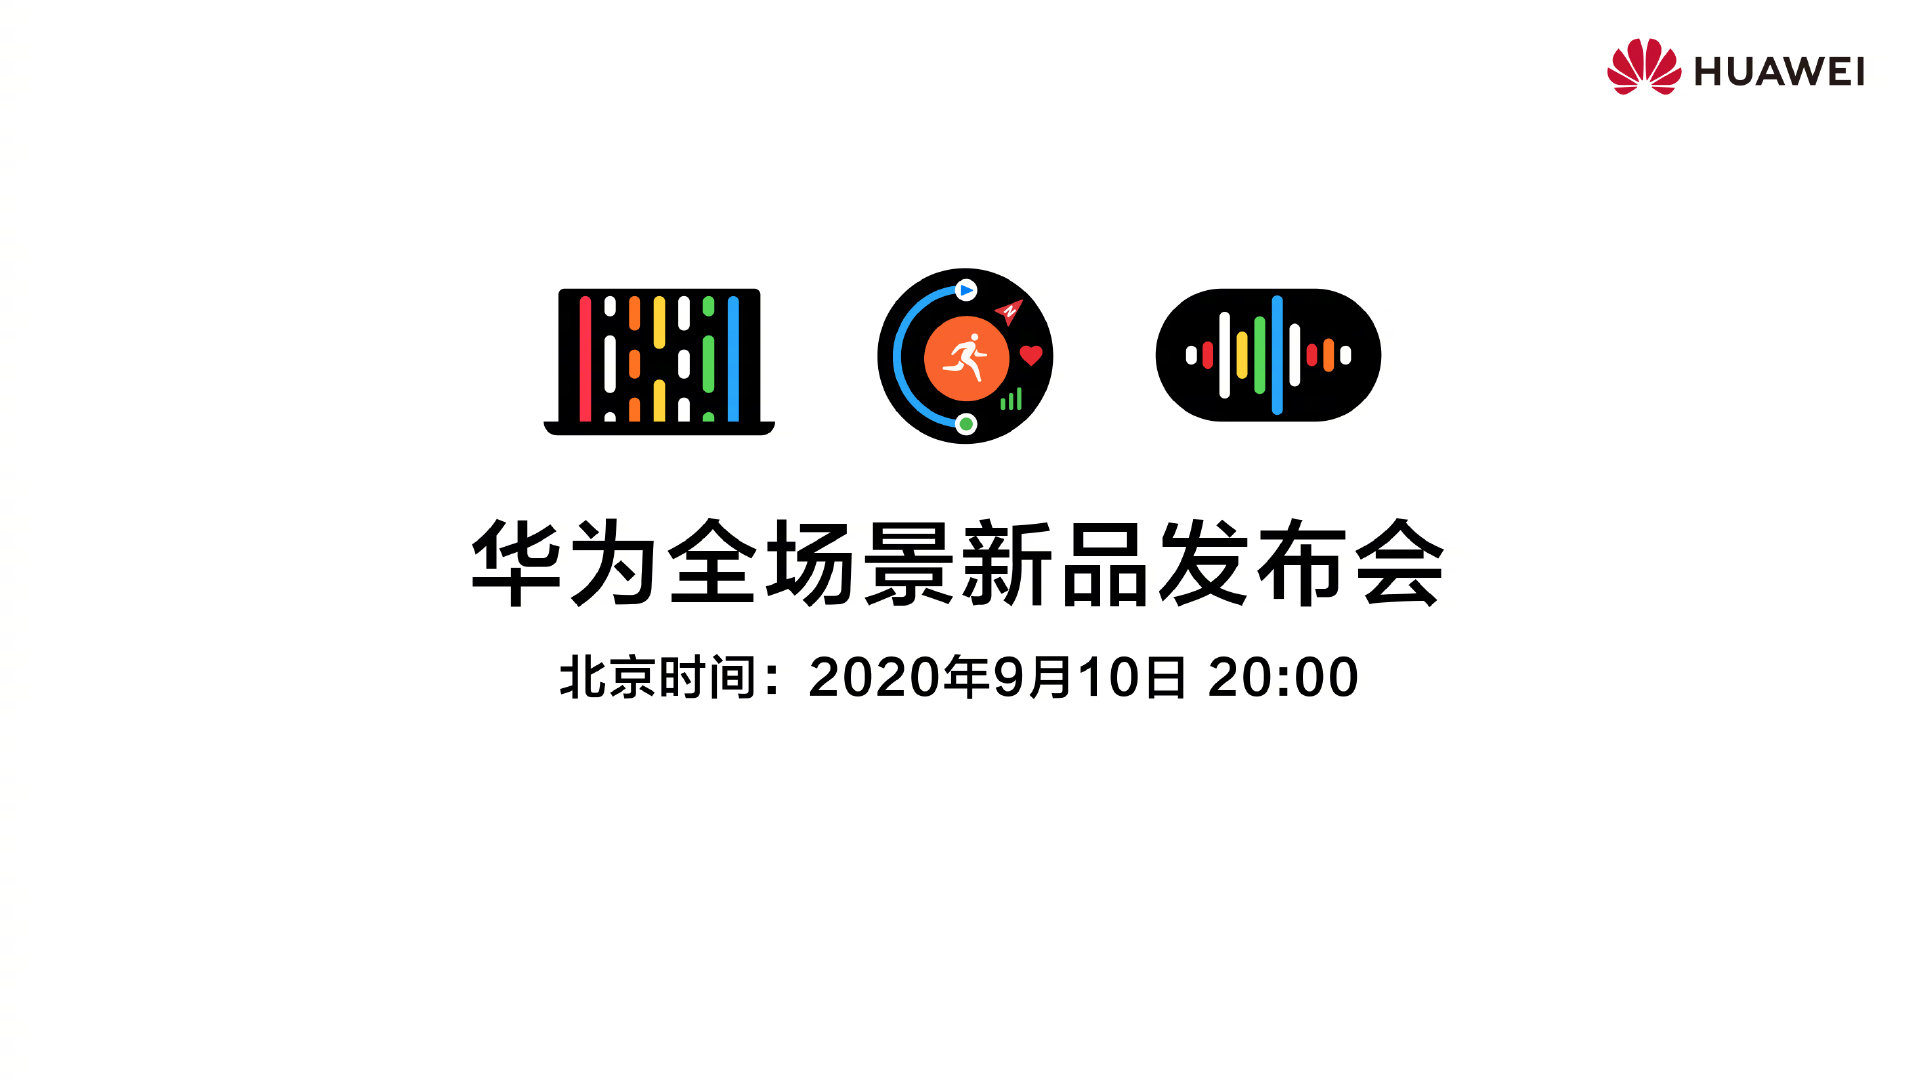 Huawei announces Sept 10 launch event, HarmonyOS-powered laptop, watch, band expected-cnTechPost